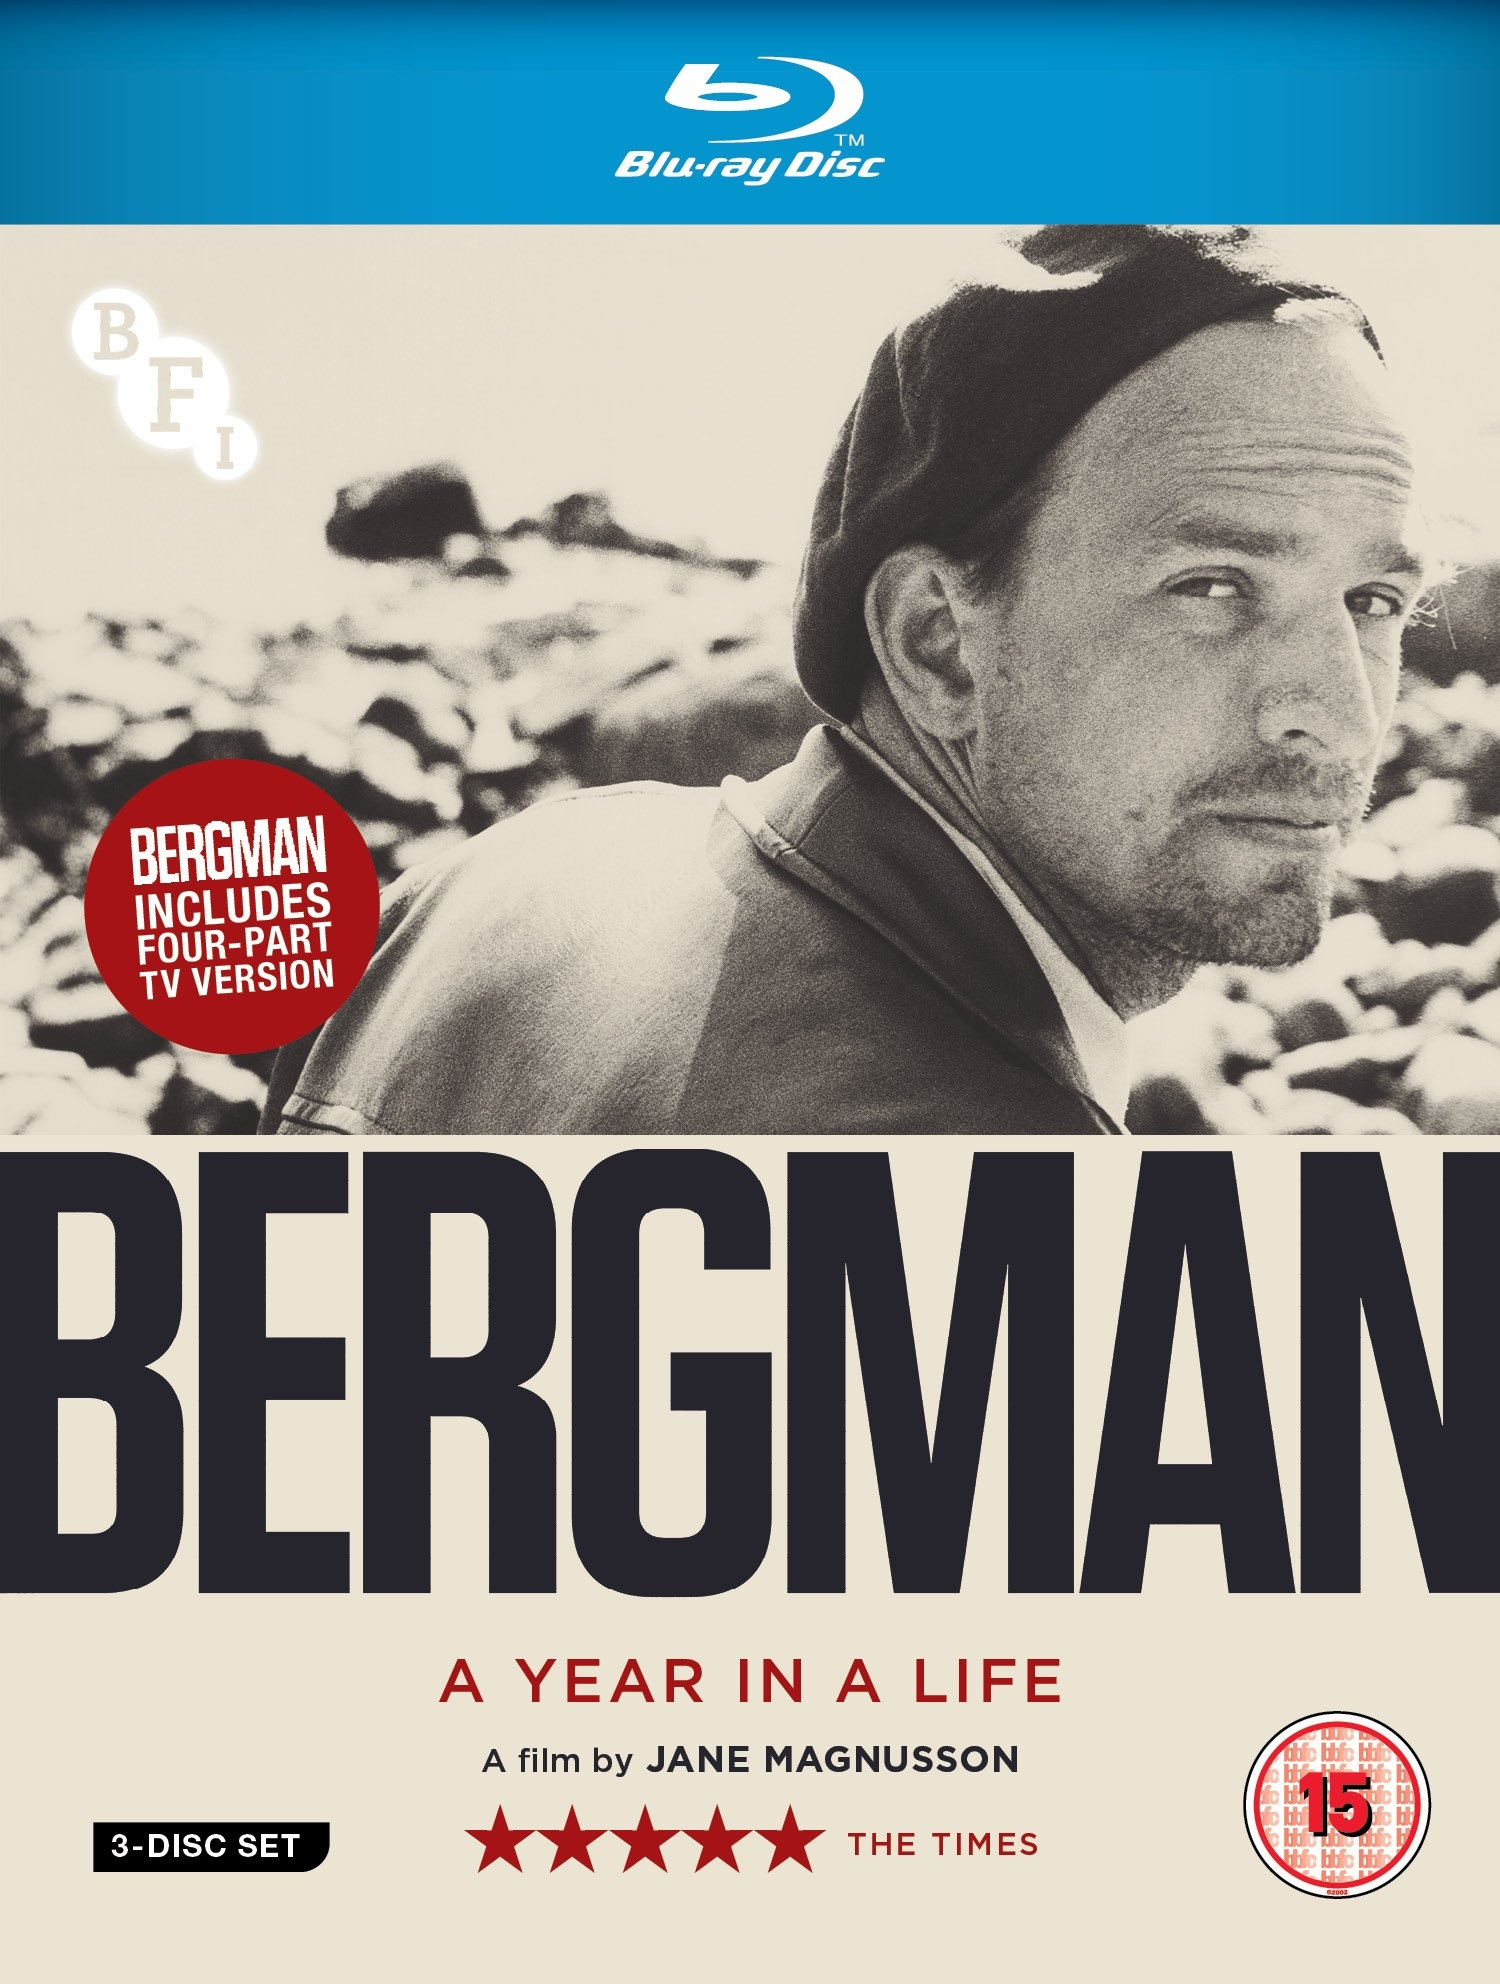 Buy Bergman: A Year In A Life (Limited Edition Blu-ray)